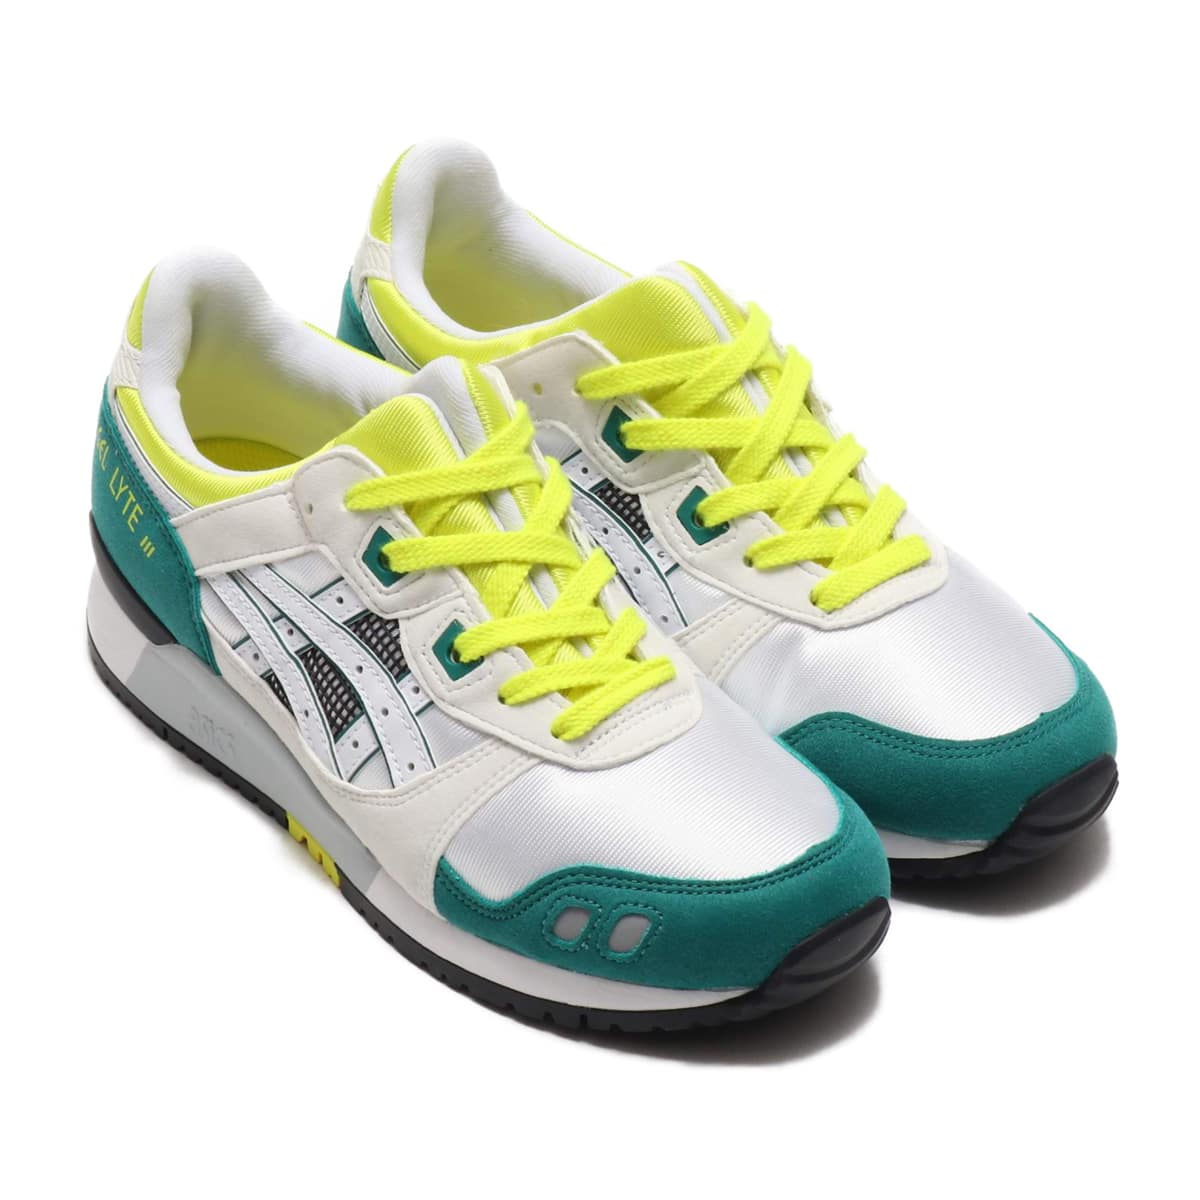 asics GEL-LYTE III OG WHITE/YELLOW 20SS-S_photo_large